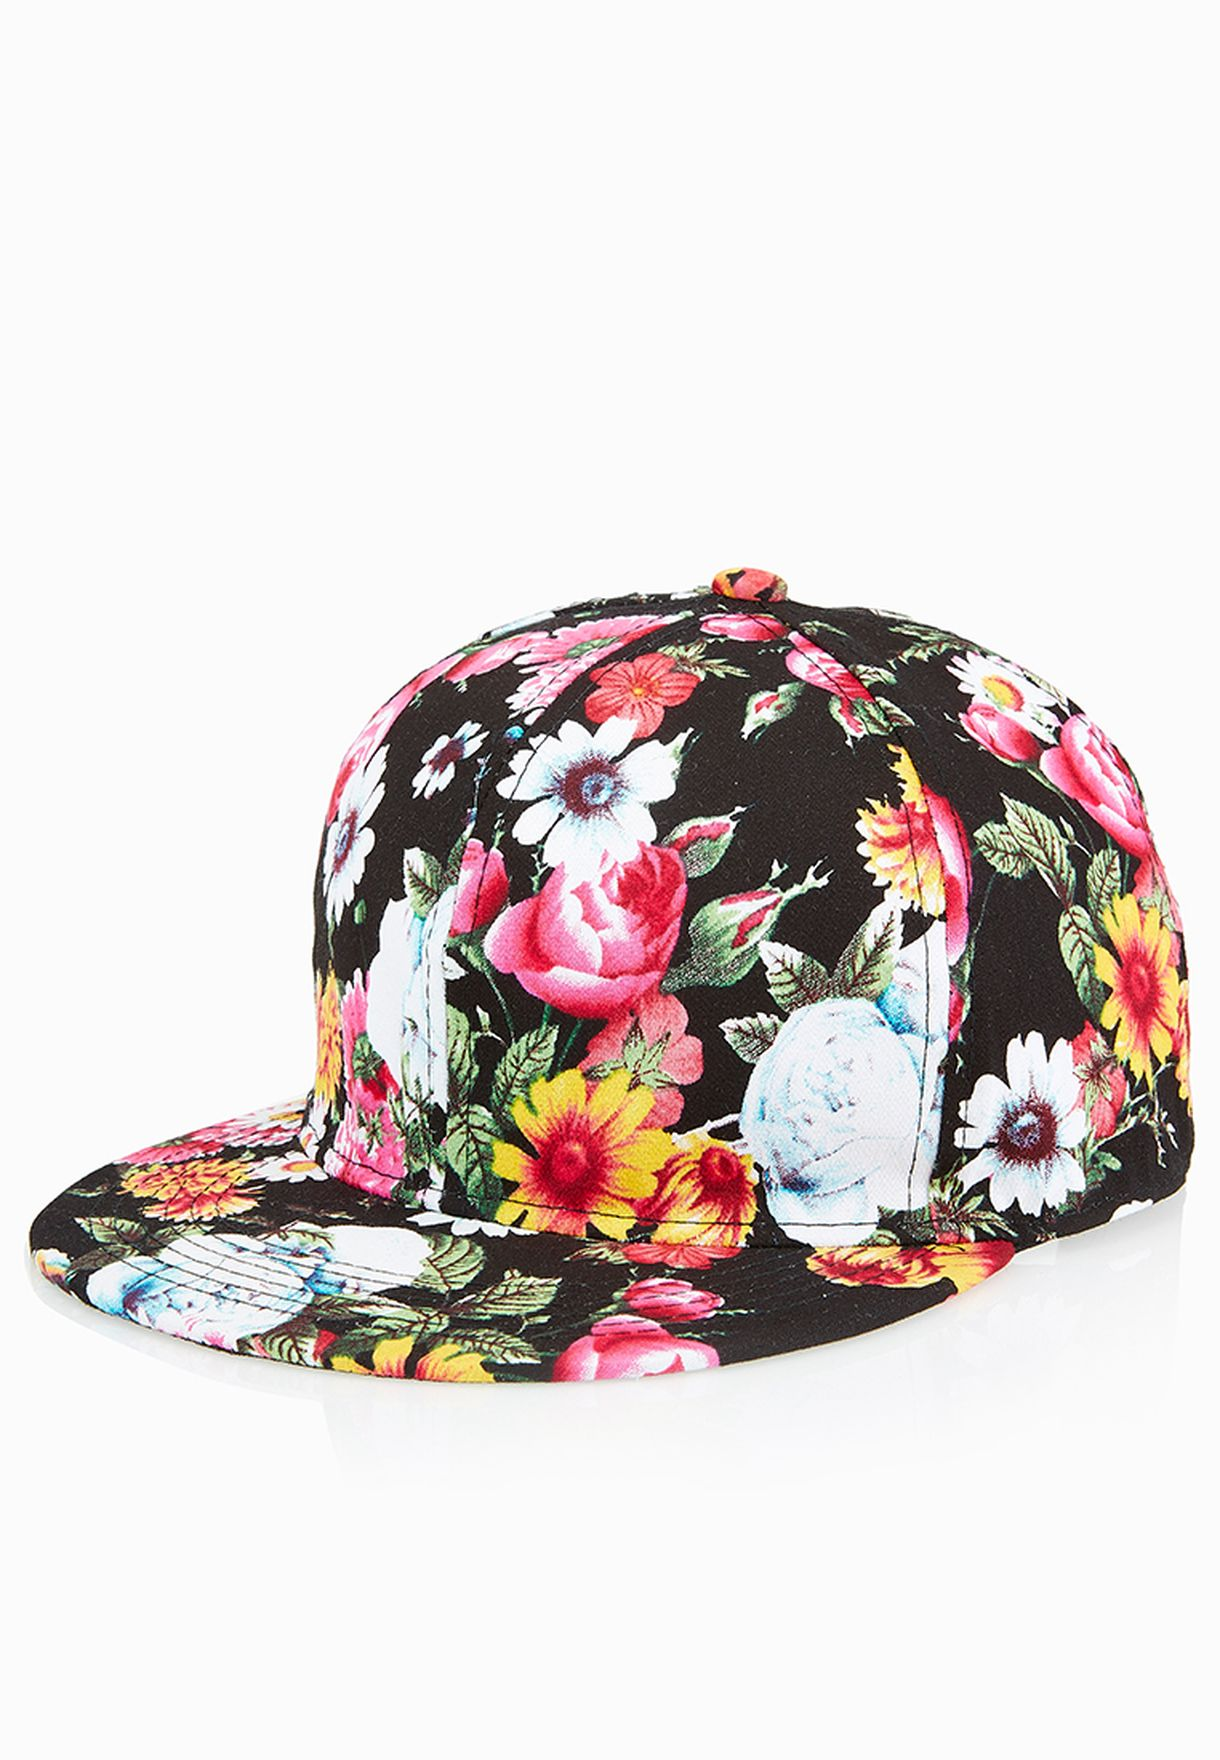 8f93e85bf07 Shop Ginger black Floral Print Cap 514-A0042 for Women in Saudi -  GI121AC70GXT